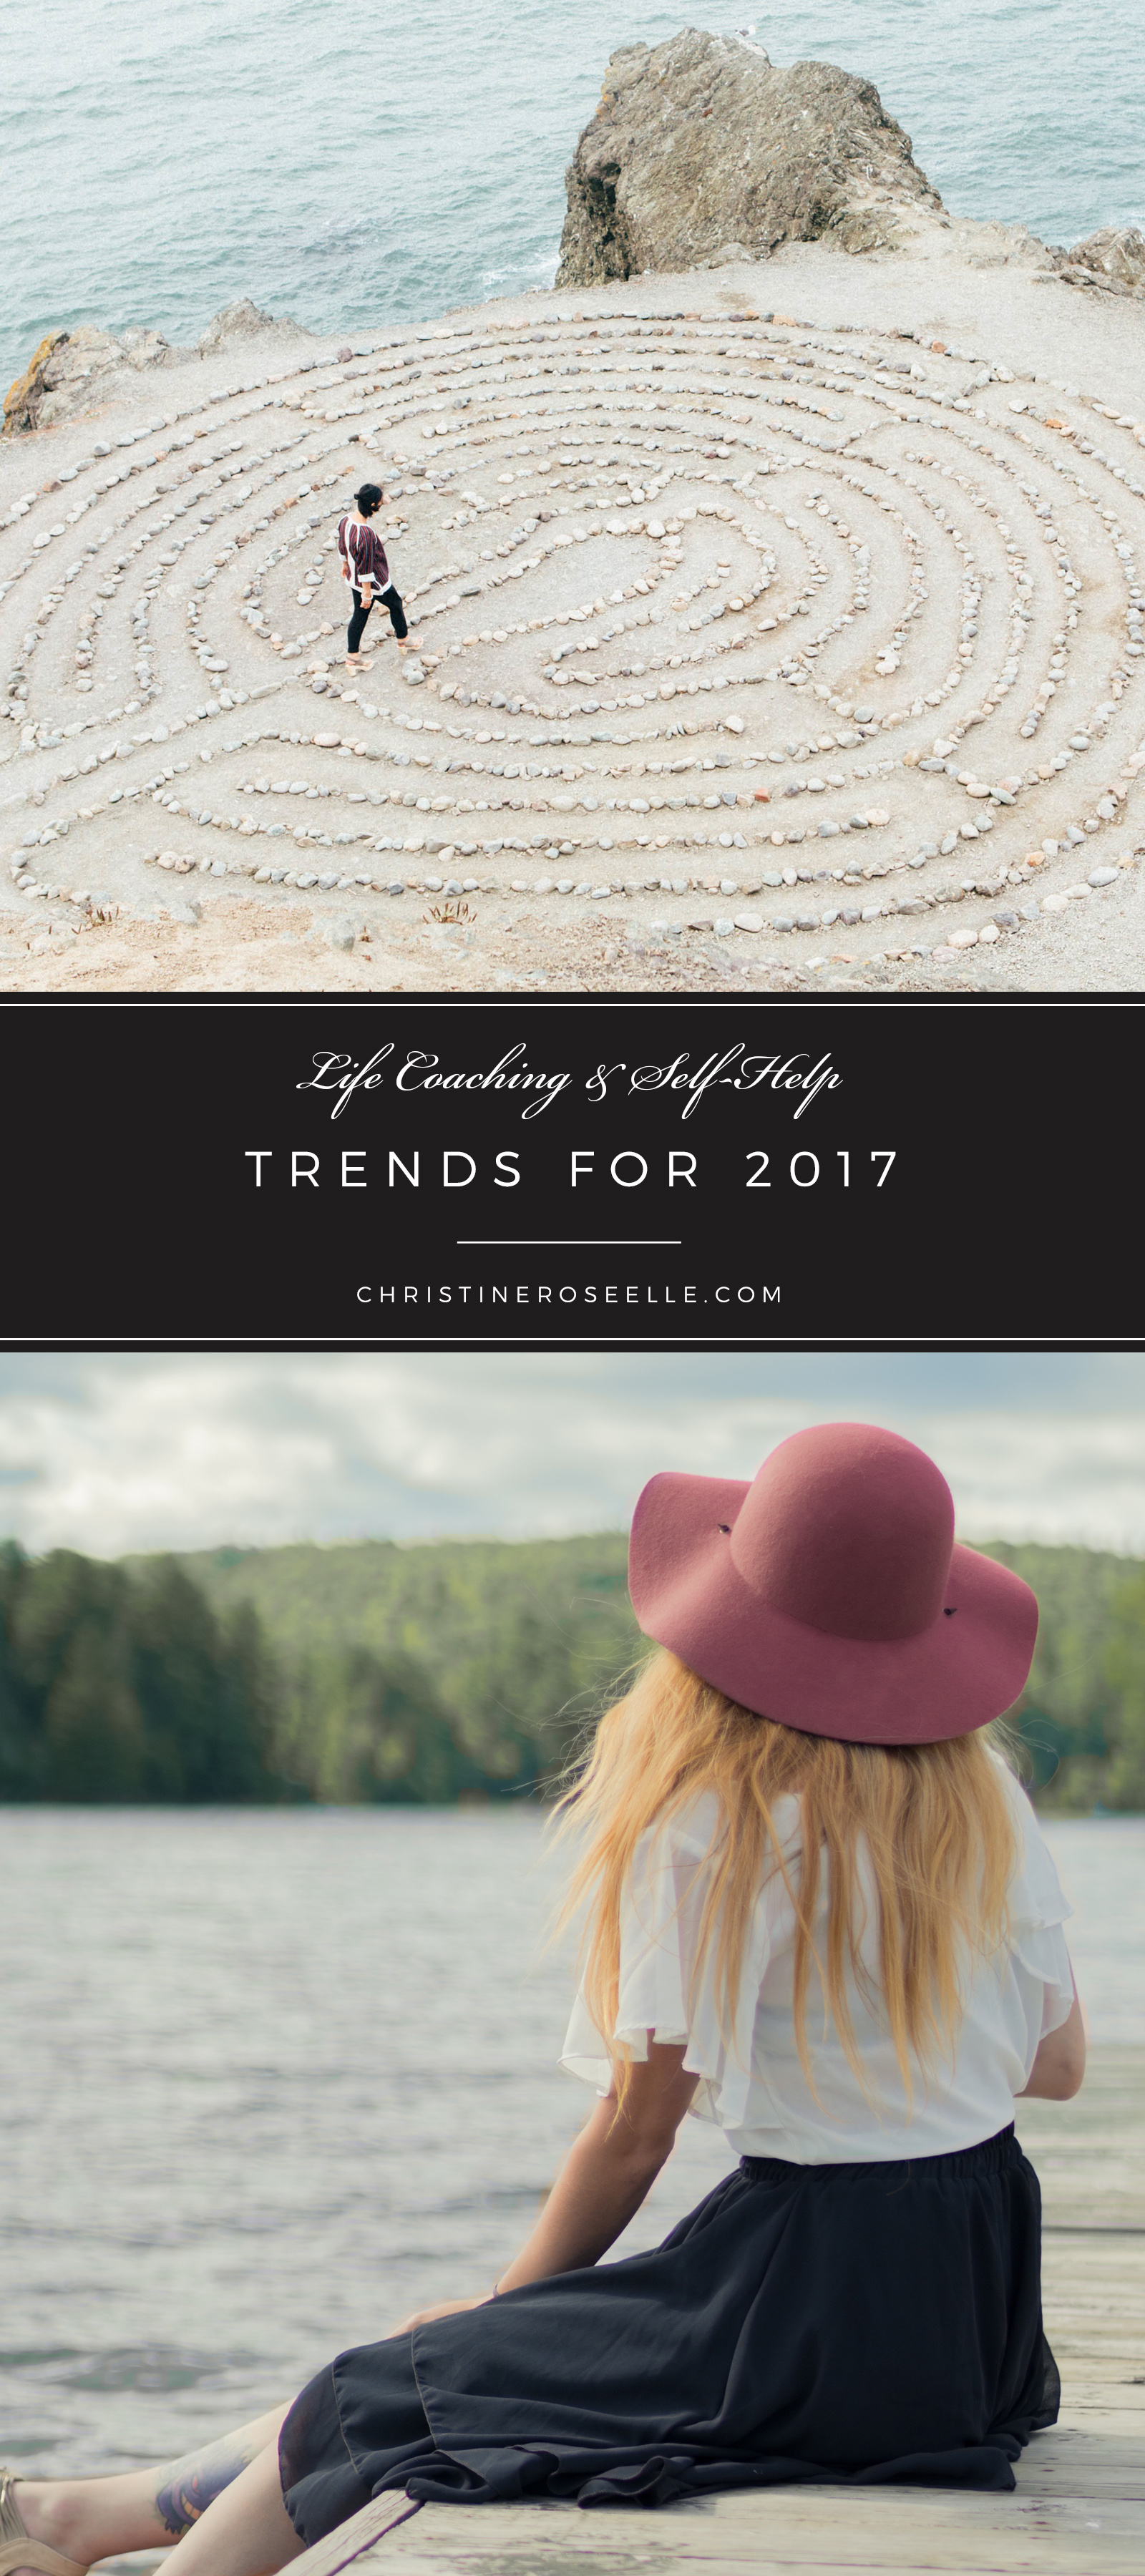 life coaching and self help trends for 2017 christine rose elle. Black Bedroom Furniture Sets. Home Design Ideas